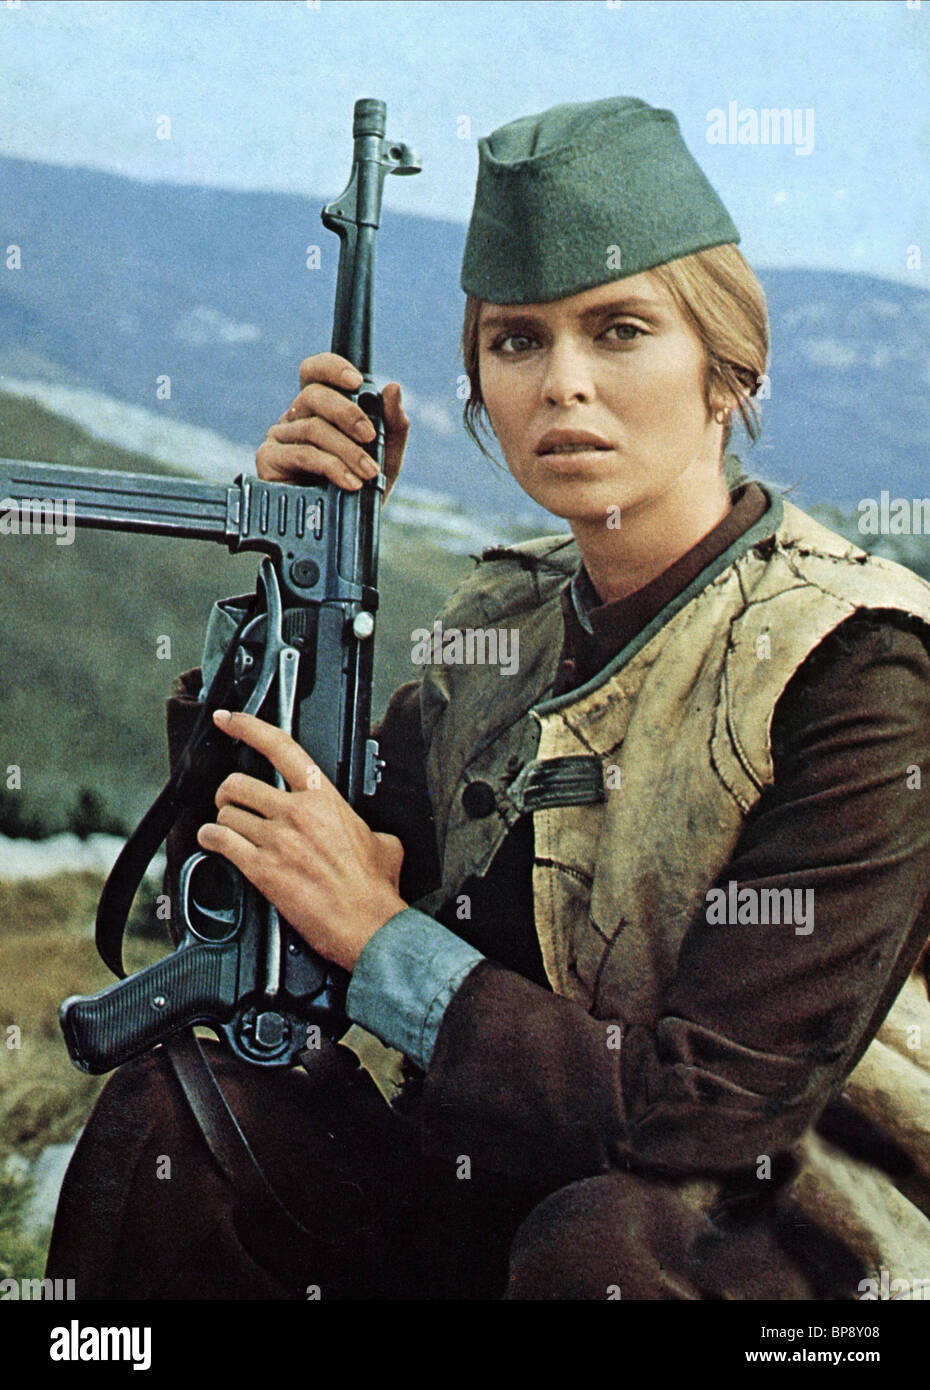 Barbara Bach Force 10 From Navarone 1978 Stock Photo Alamy Force 10 from Navarone